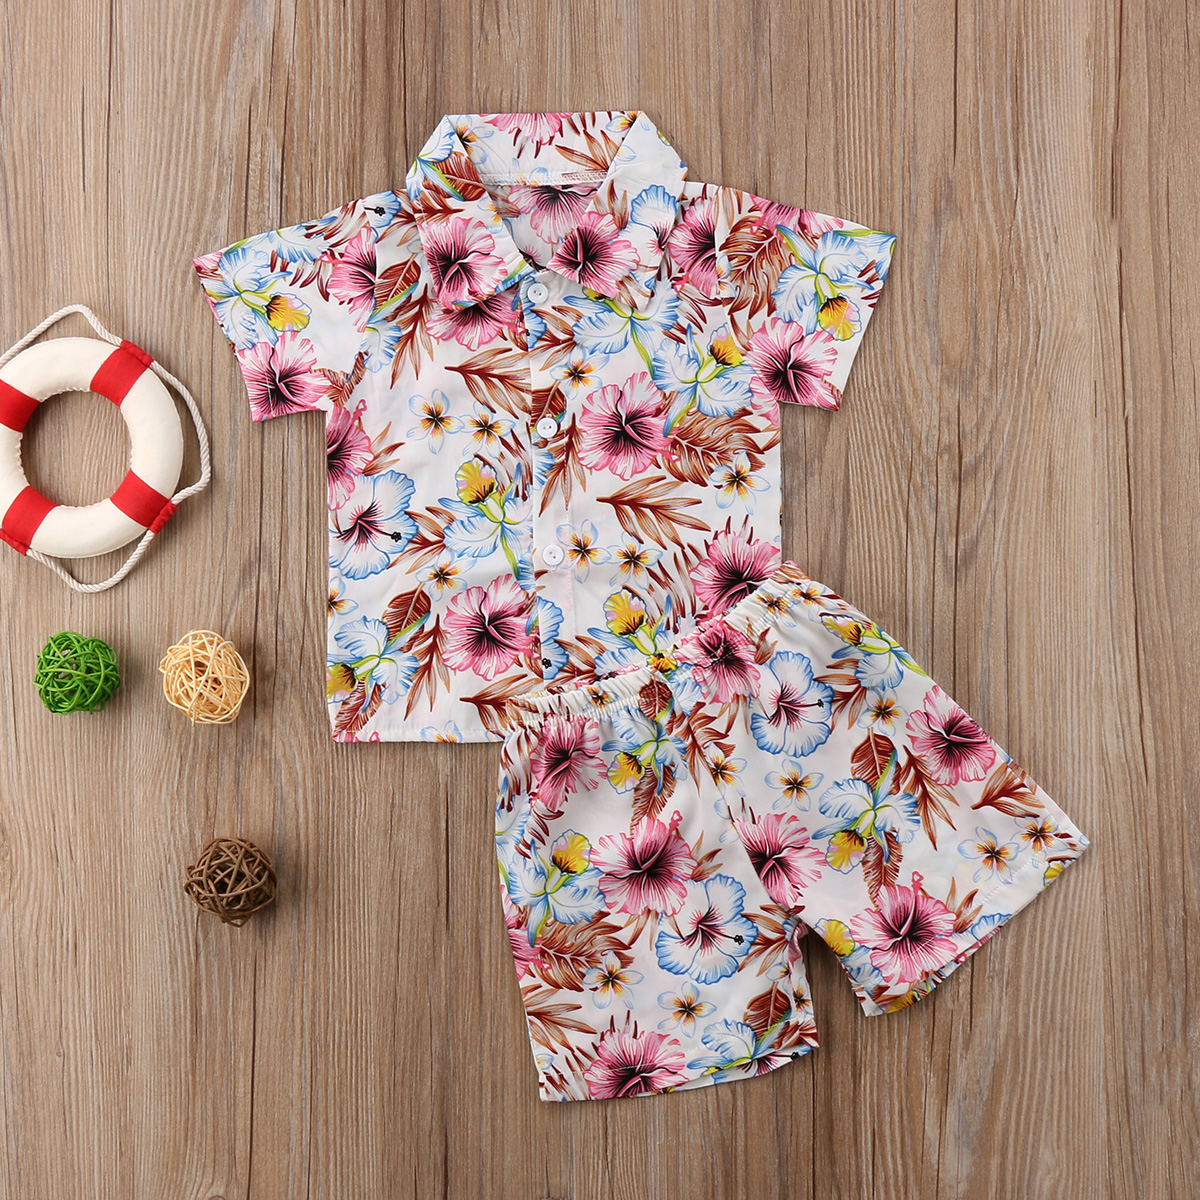 Clothing Sets Lovely 2018 New Toddler Kids Baby Boy Floral Tops T Shirt Shorts Beach Outfits Clothes Mon Handsome Summer Cute Fashion Ch